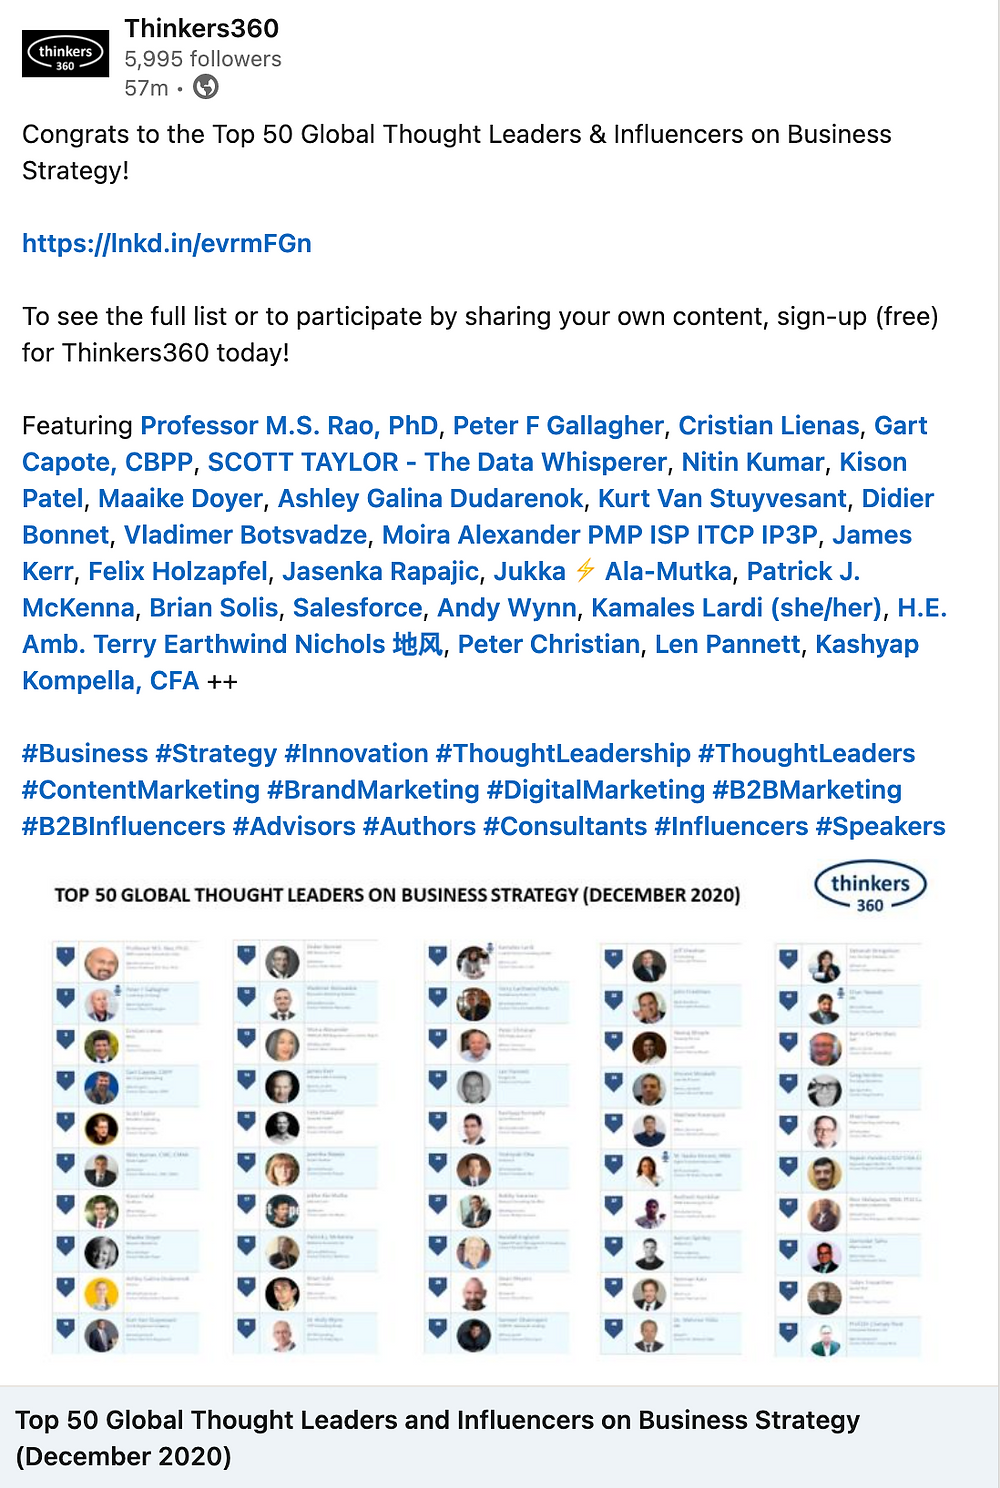 Peter F Gallagher Ranked #2 Global Thought Leaders Business Strategy (Oct 2020) Thinkers360, Peter F Gallagher Ranked #1 Global Thought Leaders Change Management Expert (Oct 2020) Thinkers360, Peter F Gallagher Expert International Speaker Author and Leadership Alignment Coach,